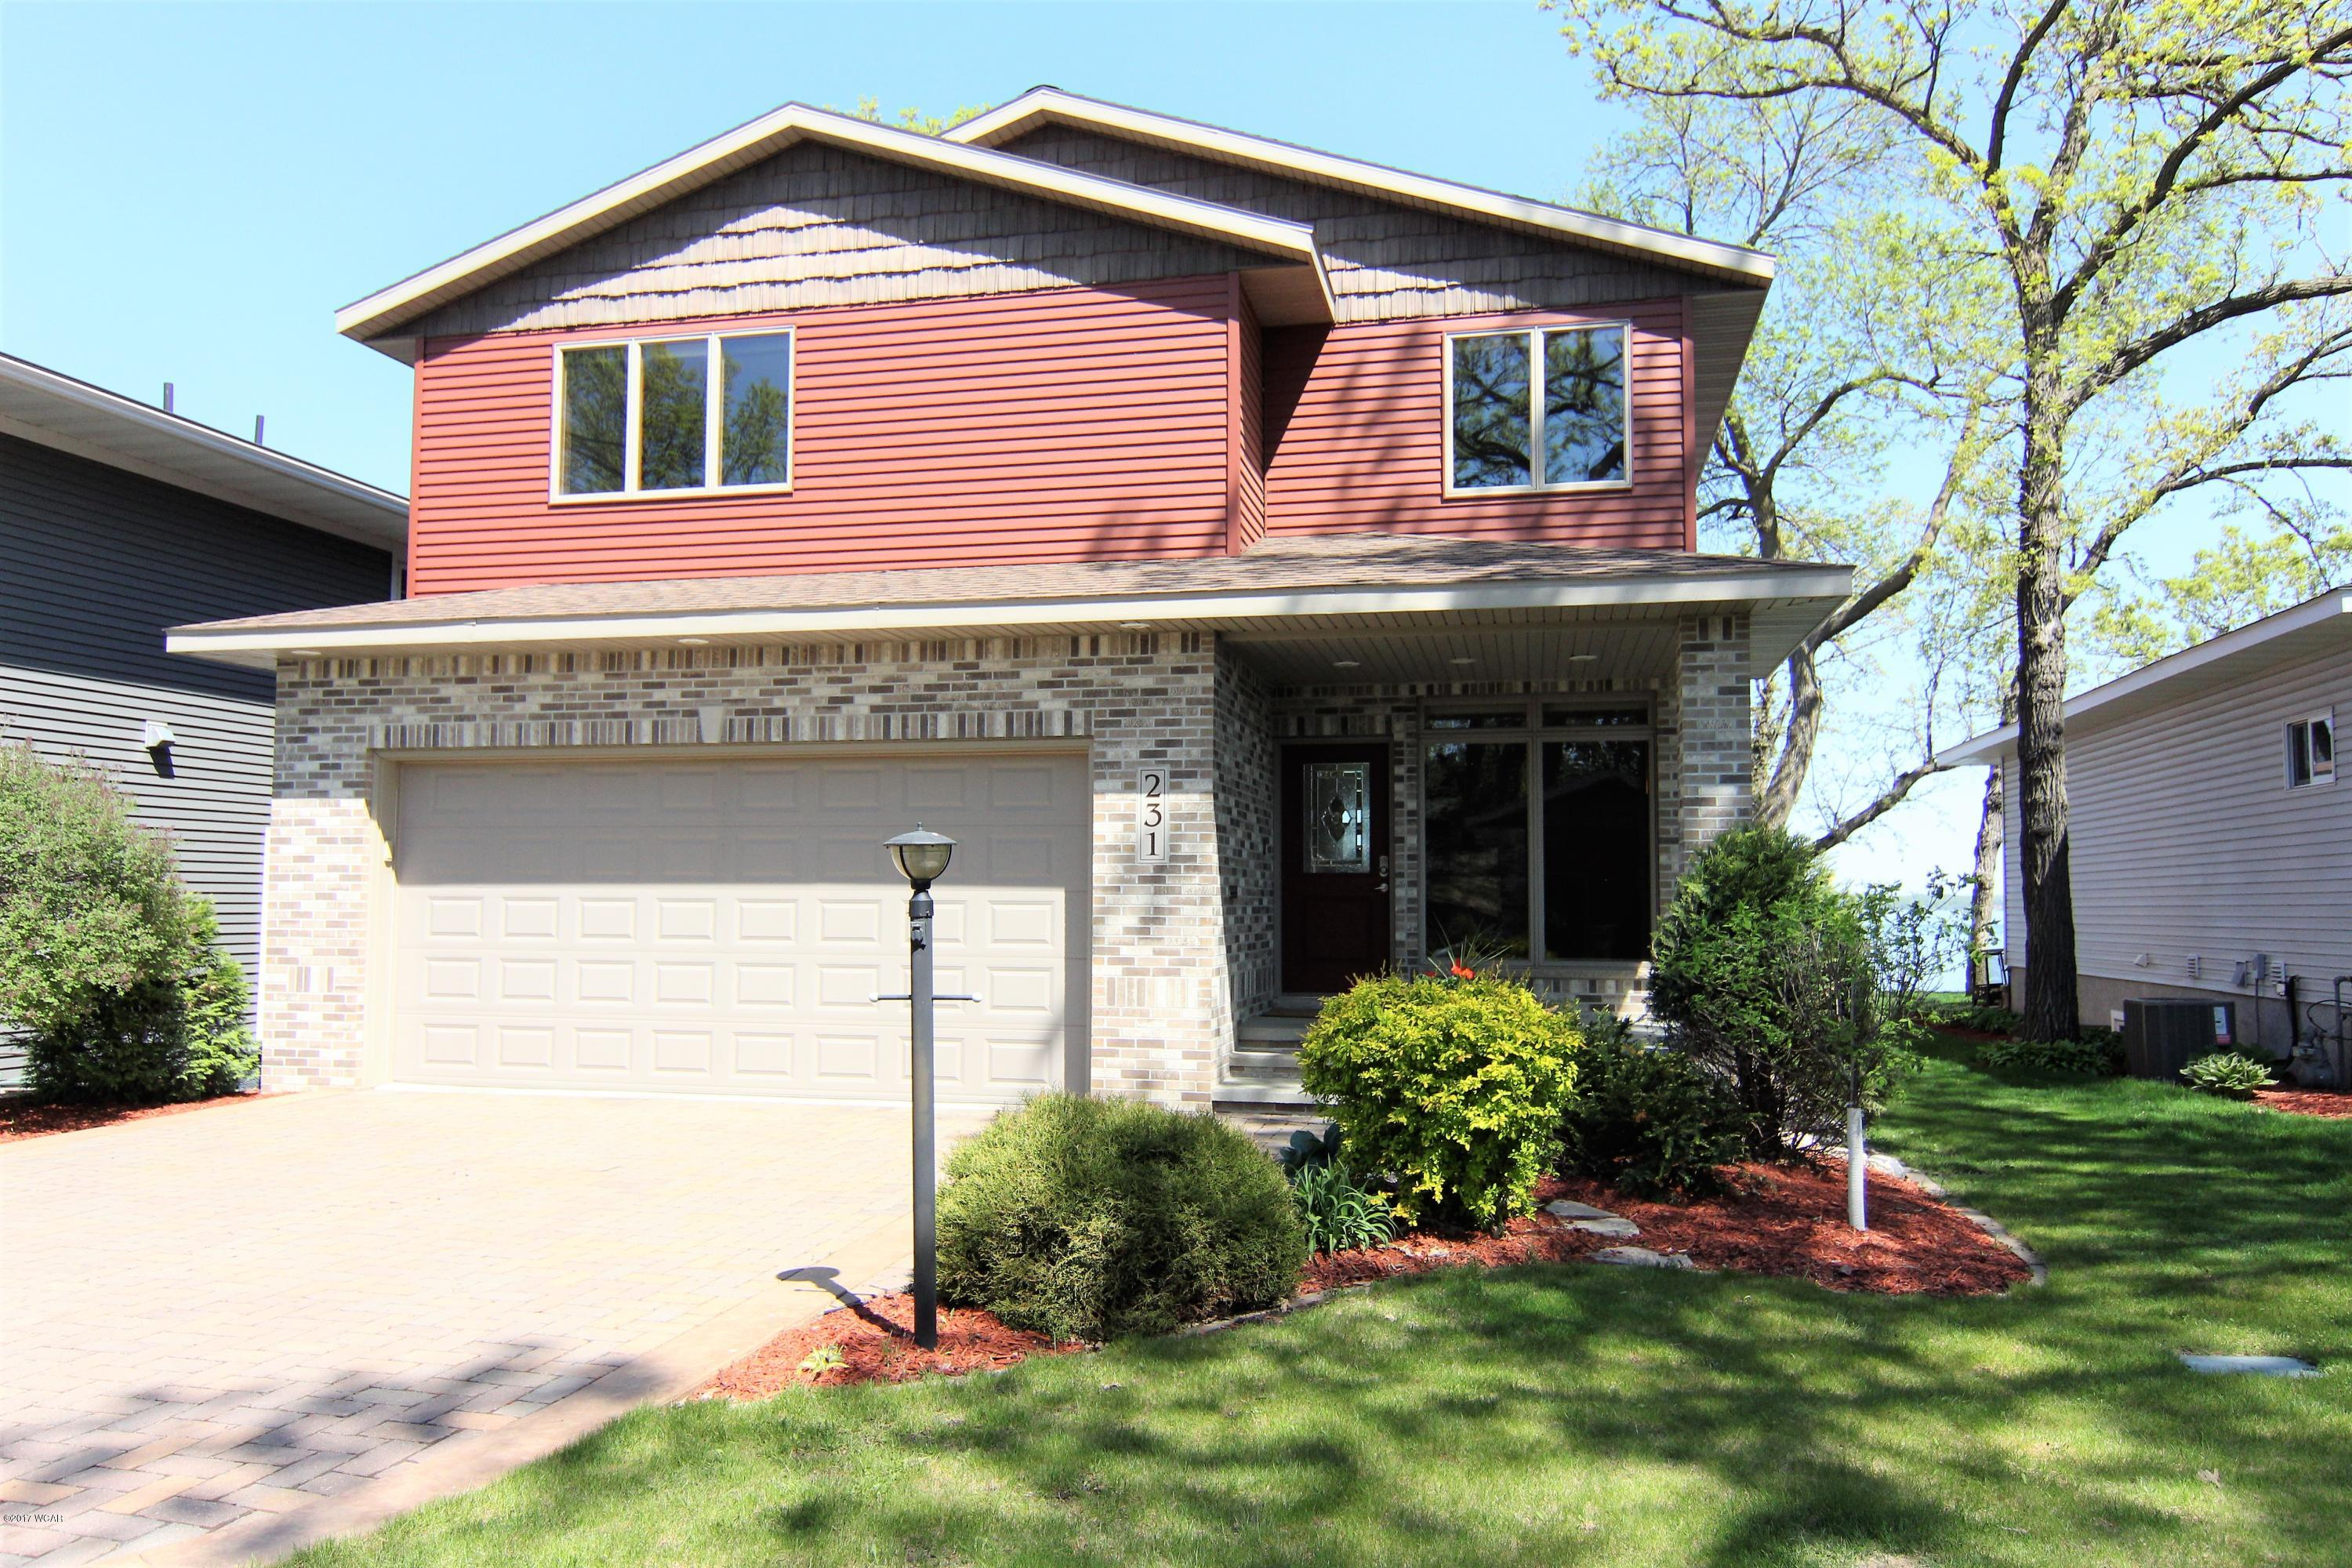 231 S Lake Ave,Spicer,3 Bedrooms Bedrooms,4 BathroomsBathrooms,Single Family,S Lake Ave,6029836